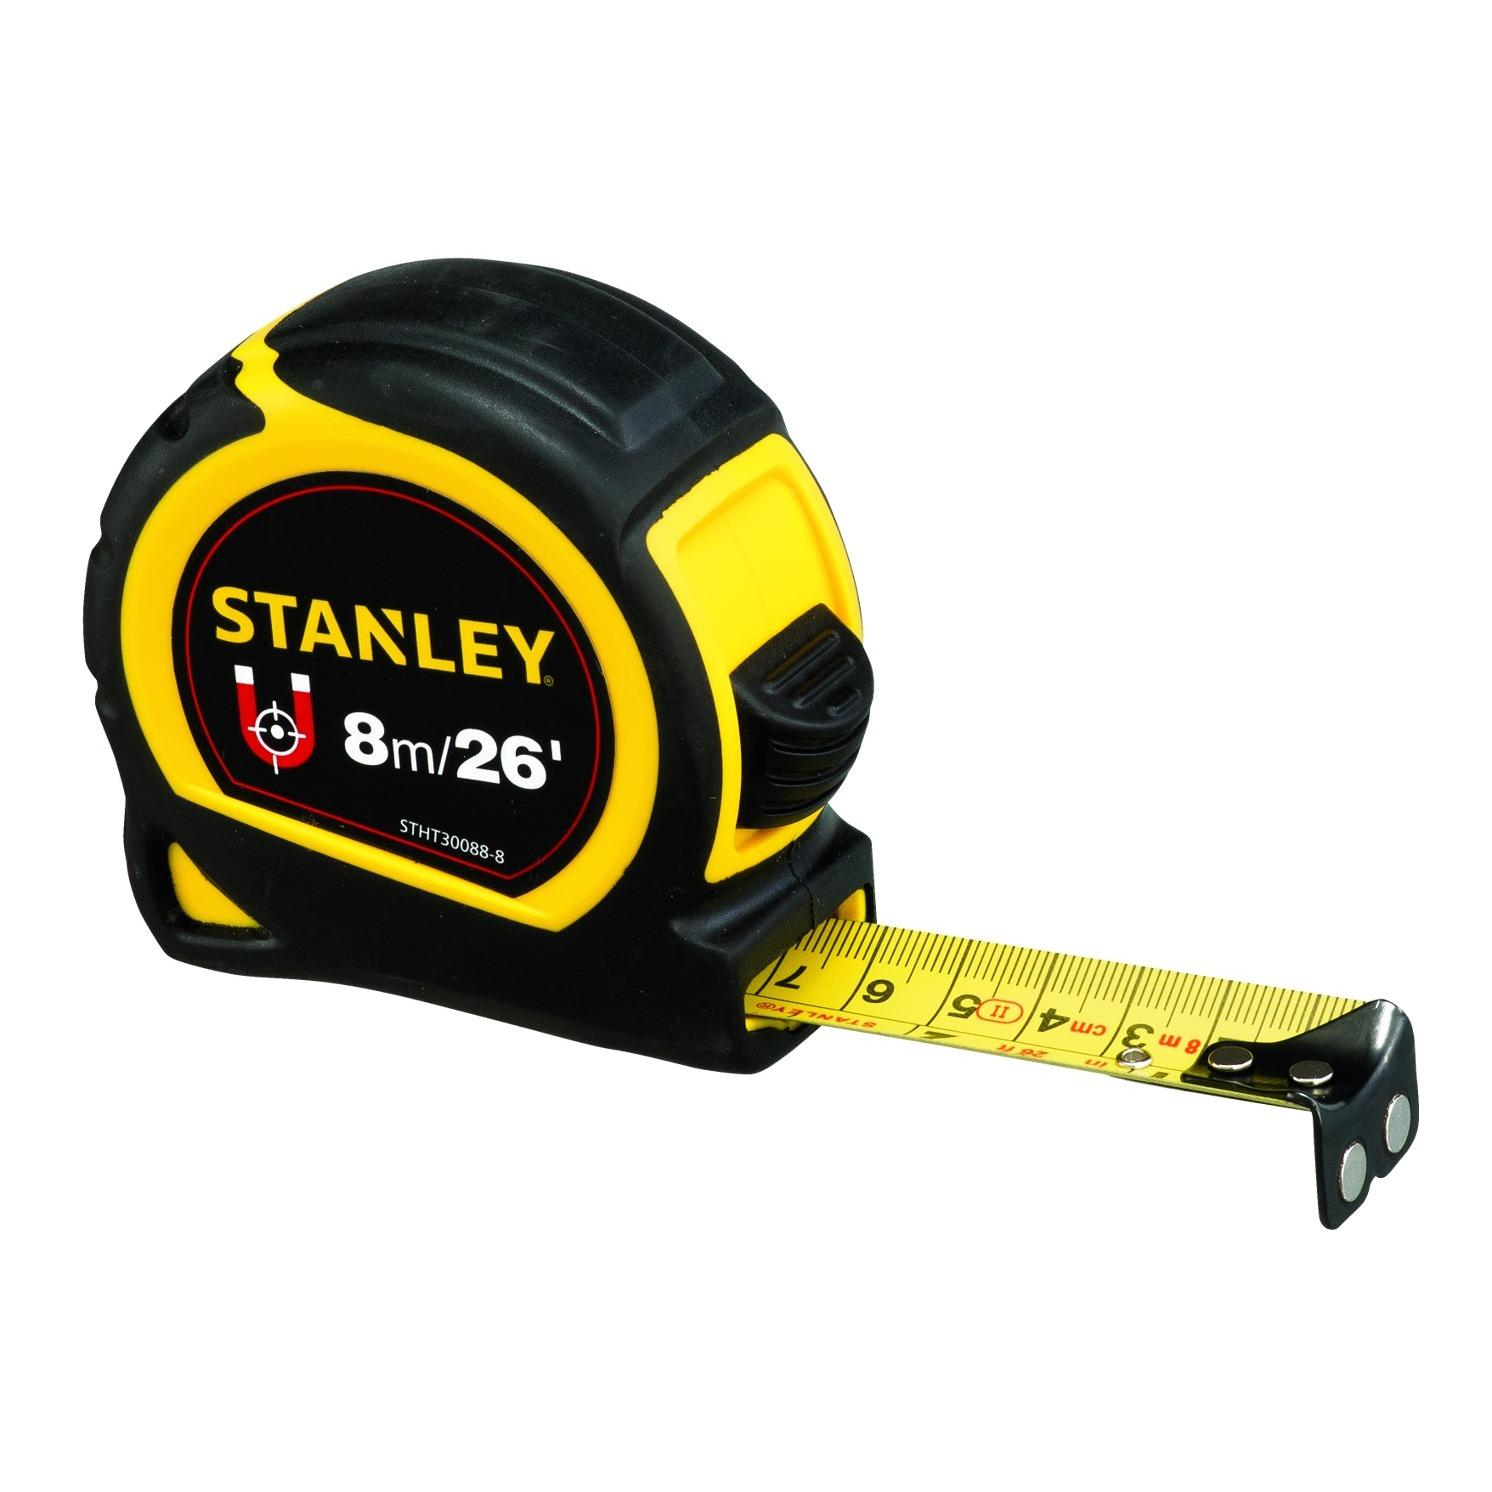 Who Sells Stanley Stht30088 8 Protape Magnetic 8M 26 25Mm Tape